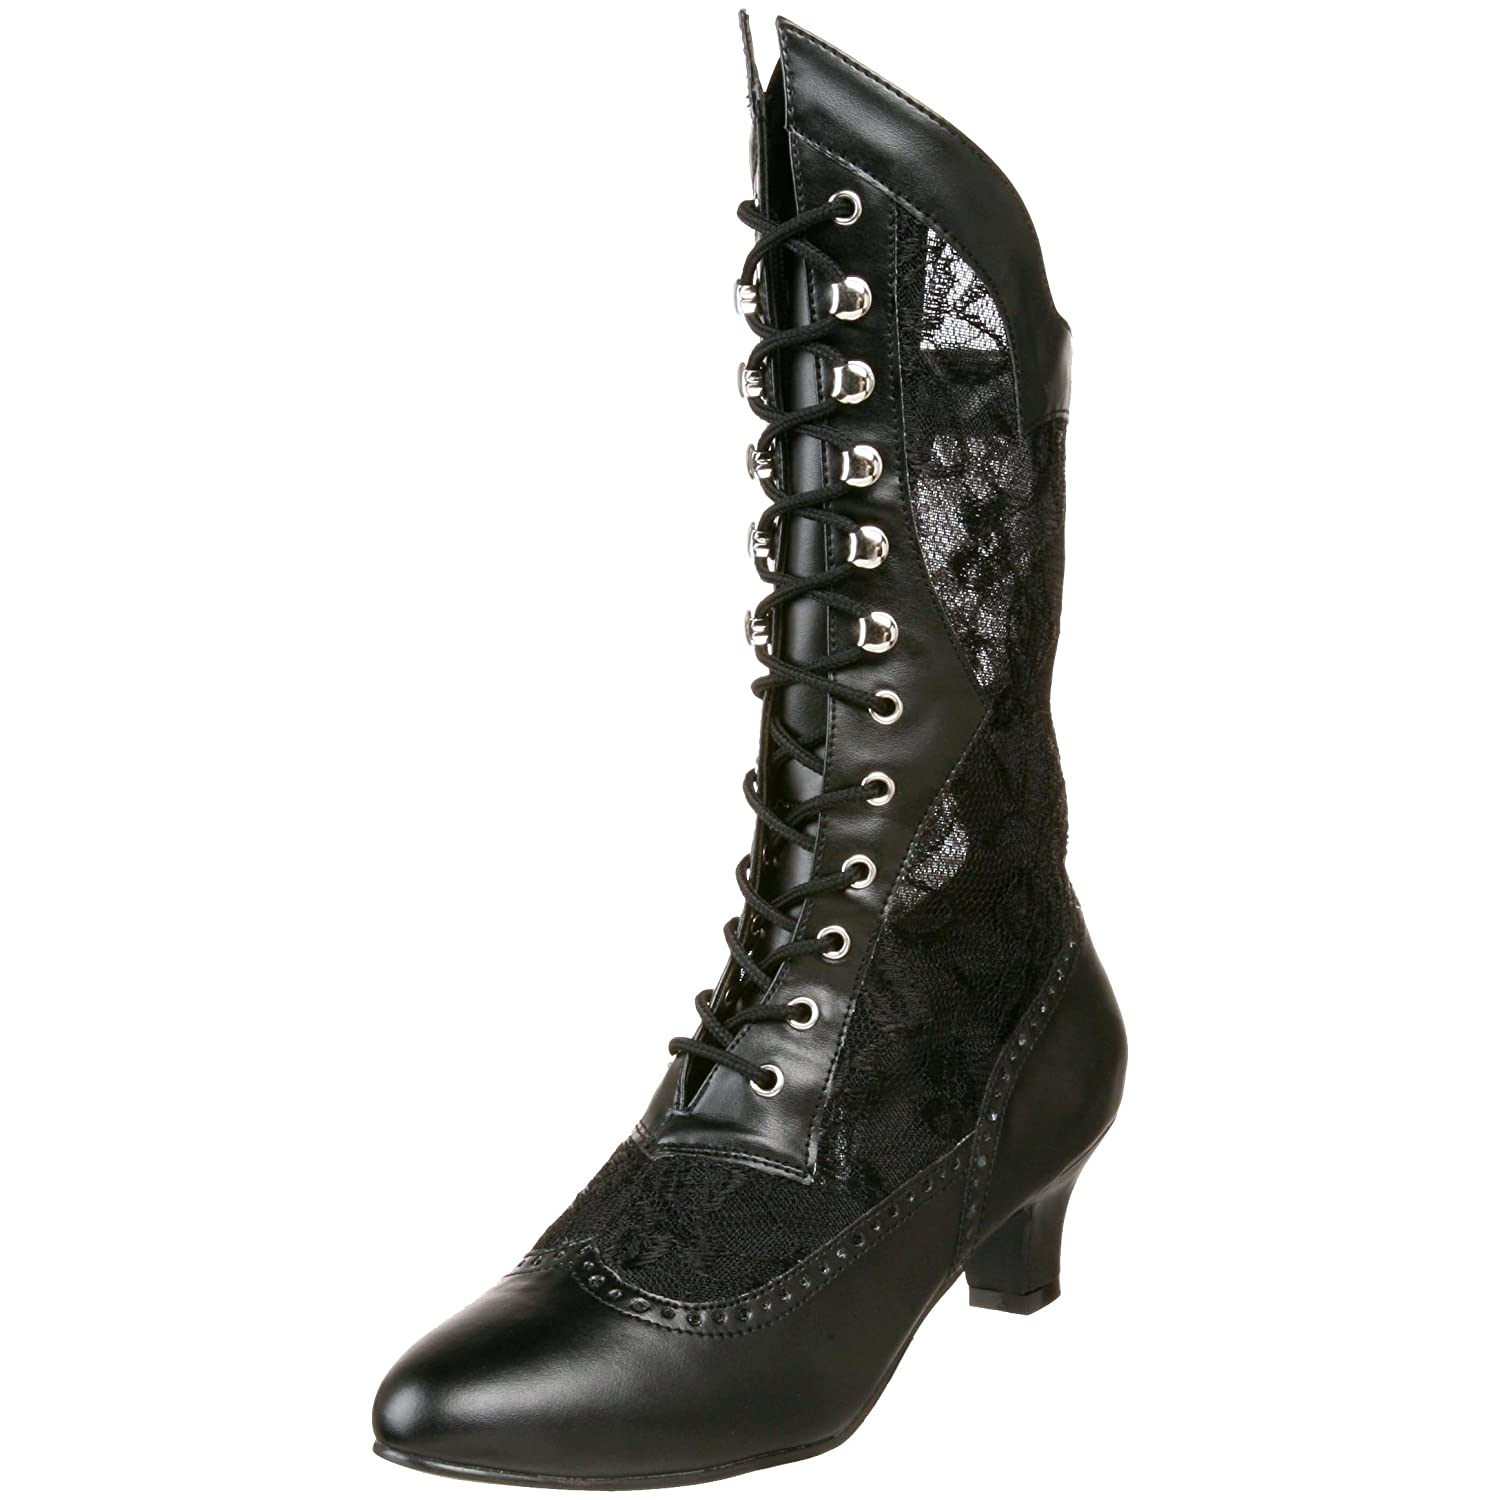 Vintage Boots- Buy Winter Retro Boots Funtasma Dame115/B/Pu Women Warm Lining Ankle Boots �74.05 AT vintagedancer.com